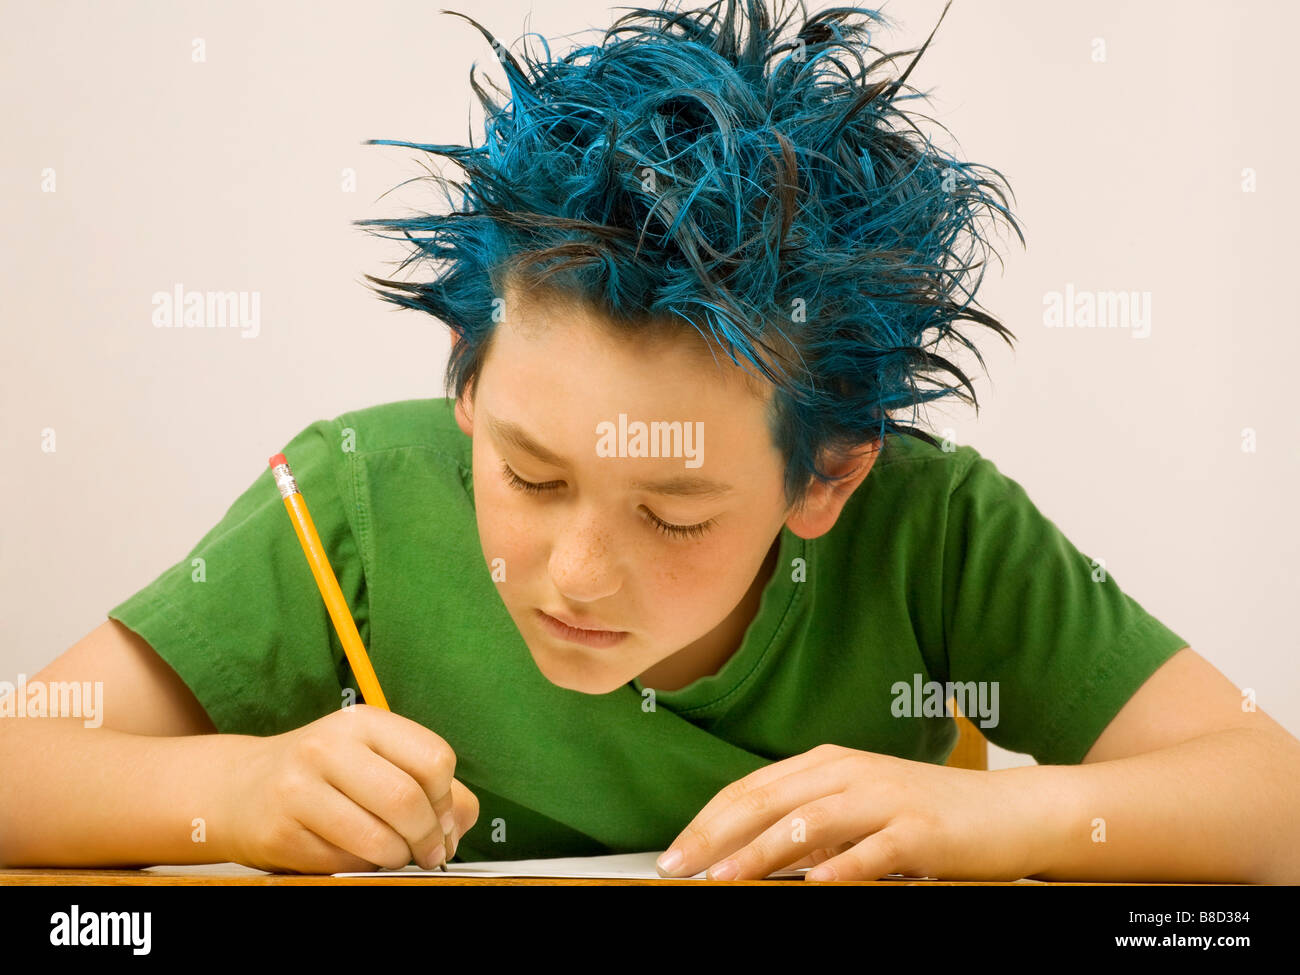 Boy with blue spiked hair writing - Stock Image